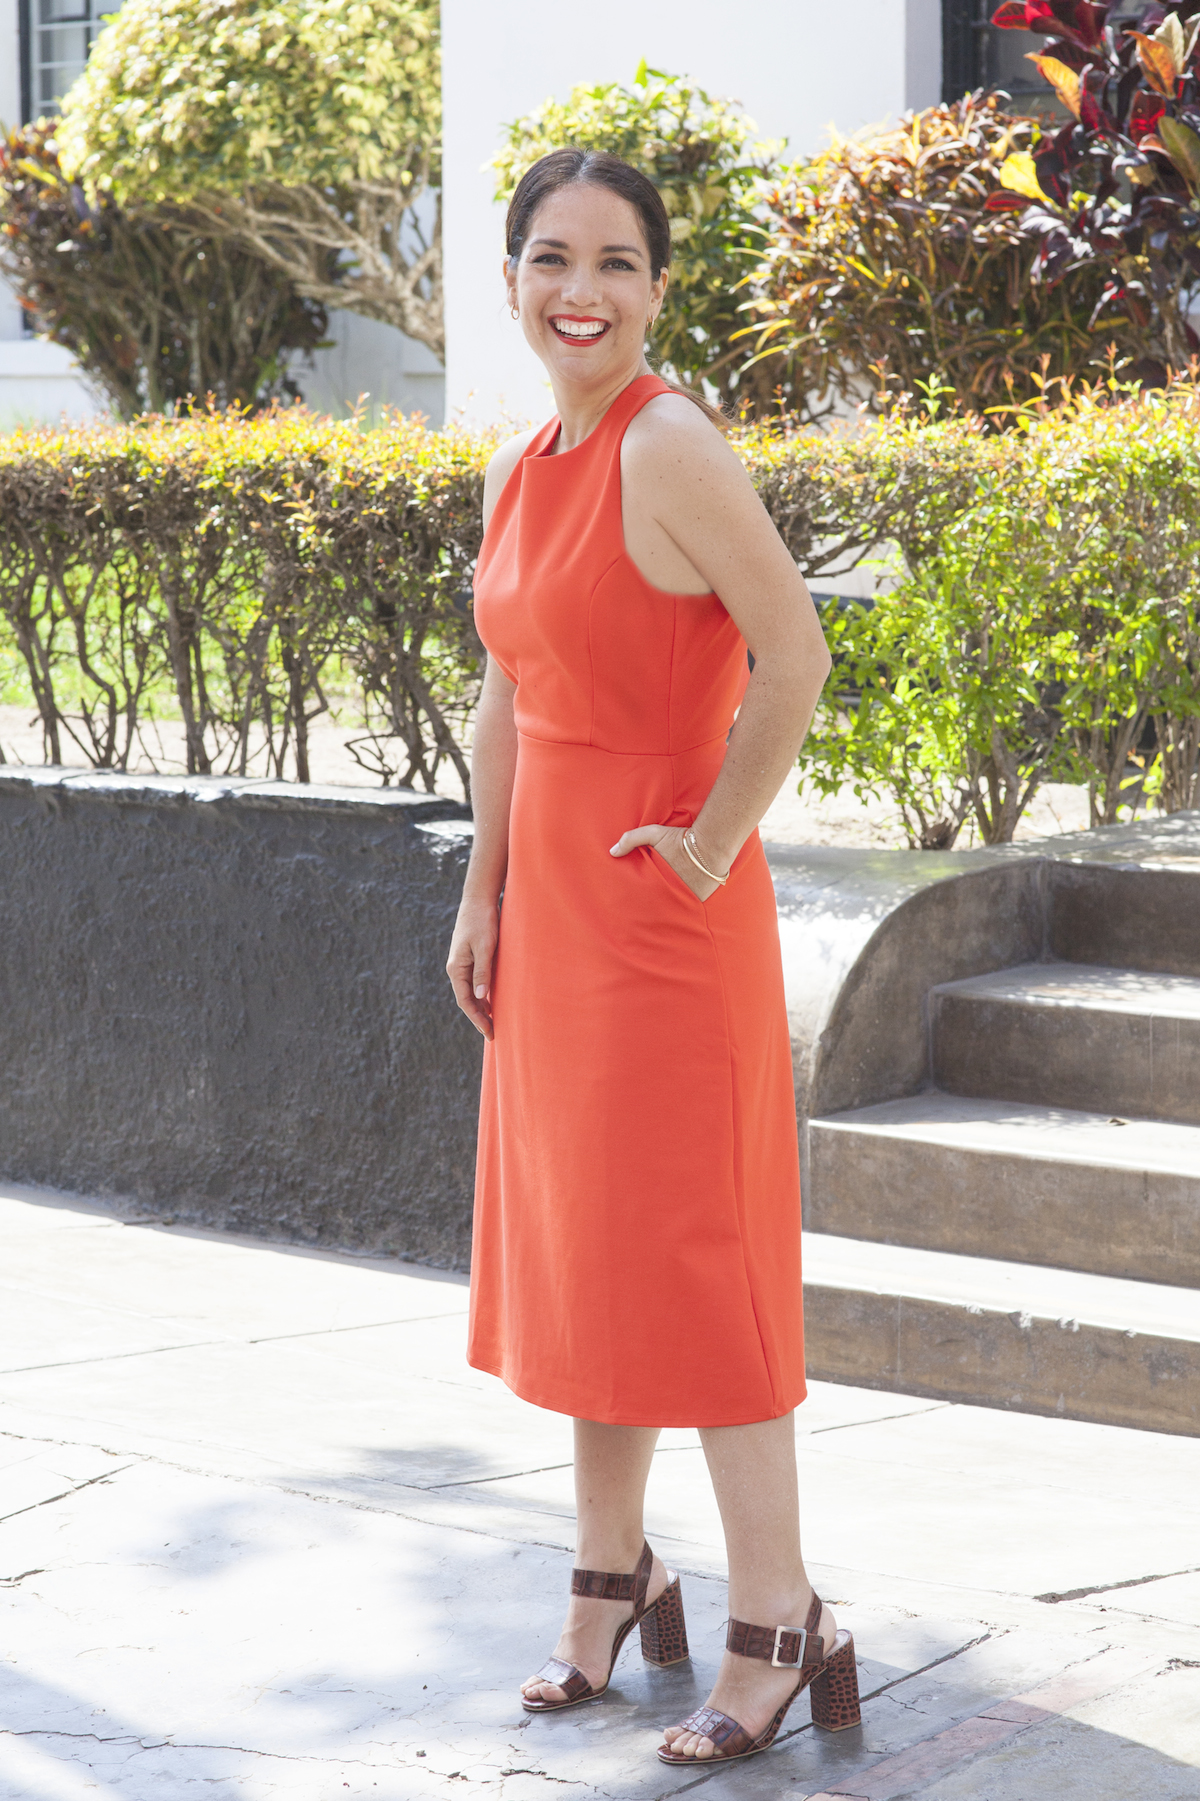 Banana Republic Orange dress NWT - La Vida de Serendipity 2